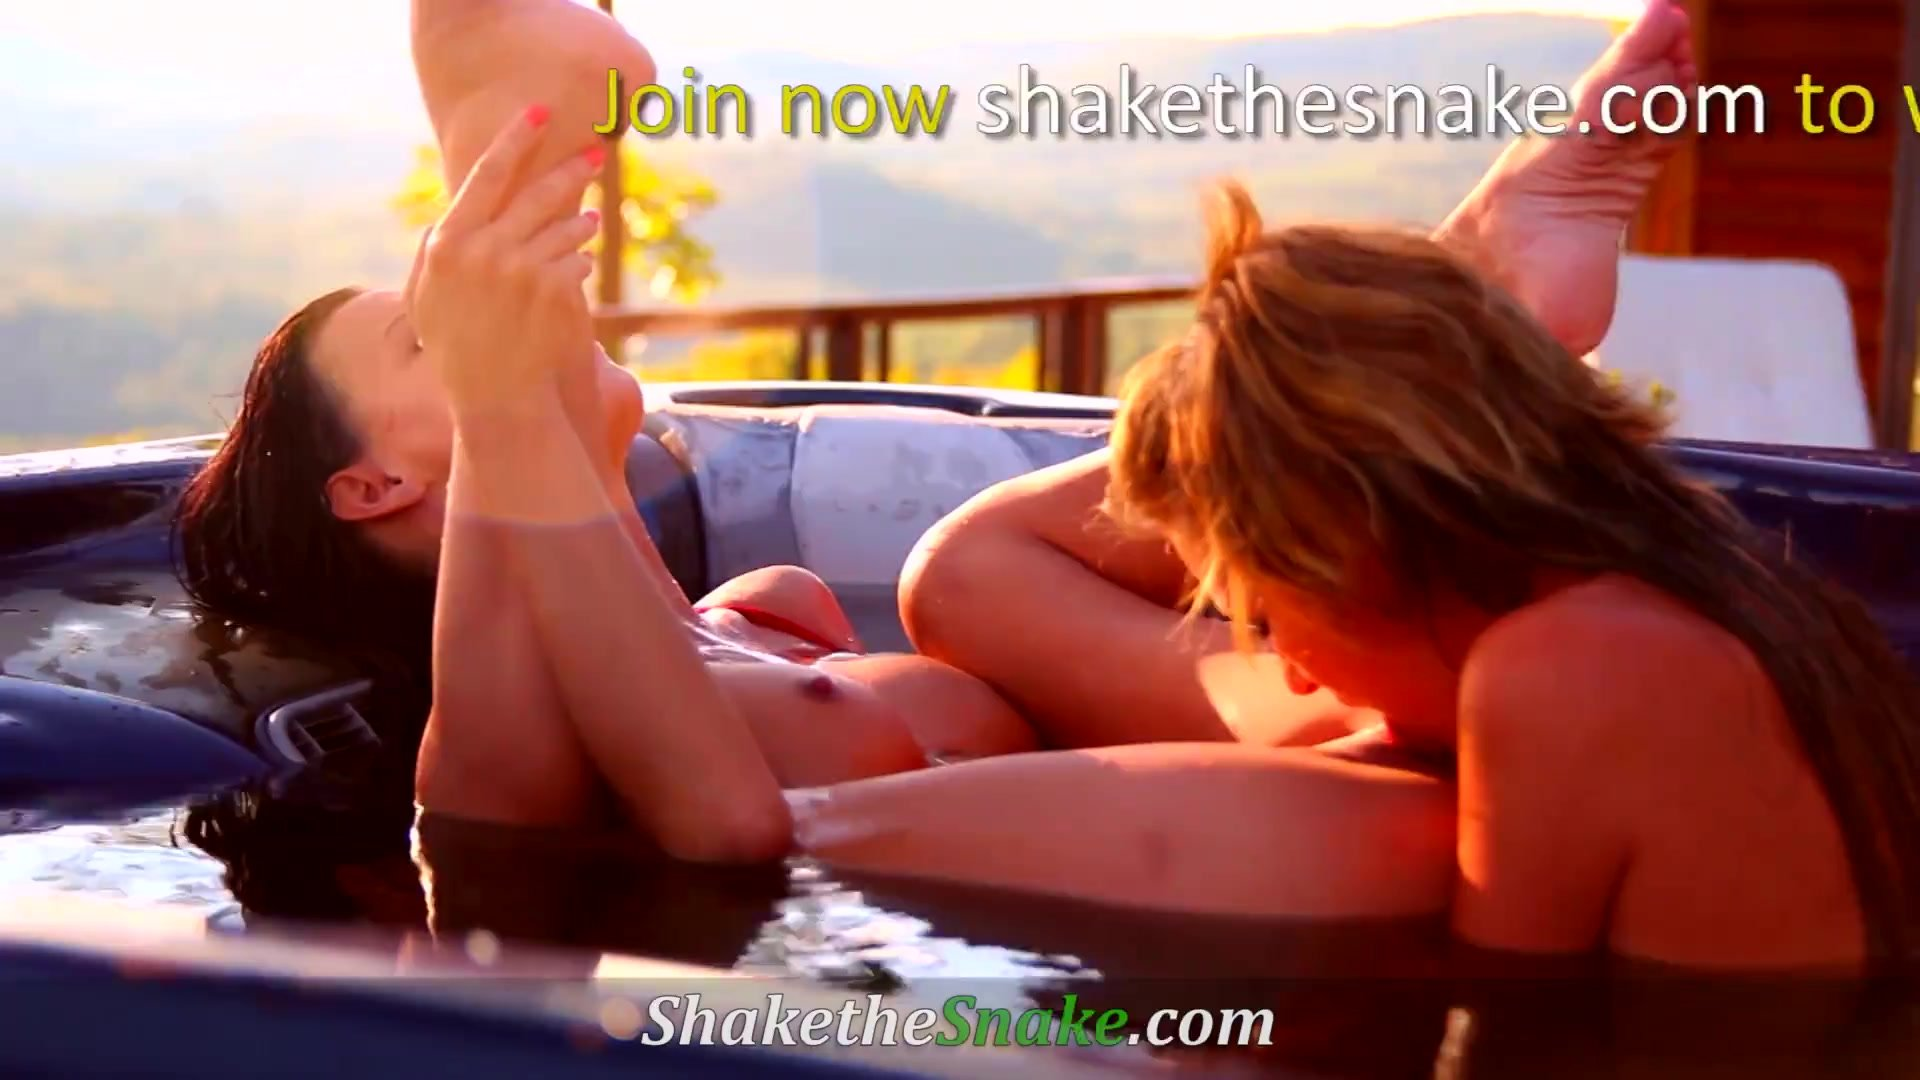 Shake The Snake - Girl on Girl Action with Super Hot Amateurs